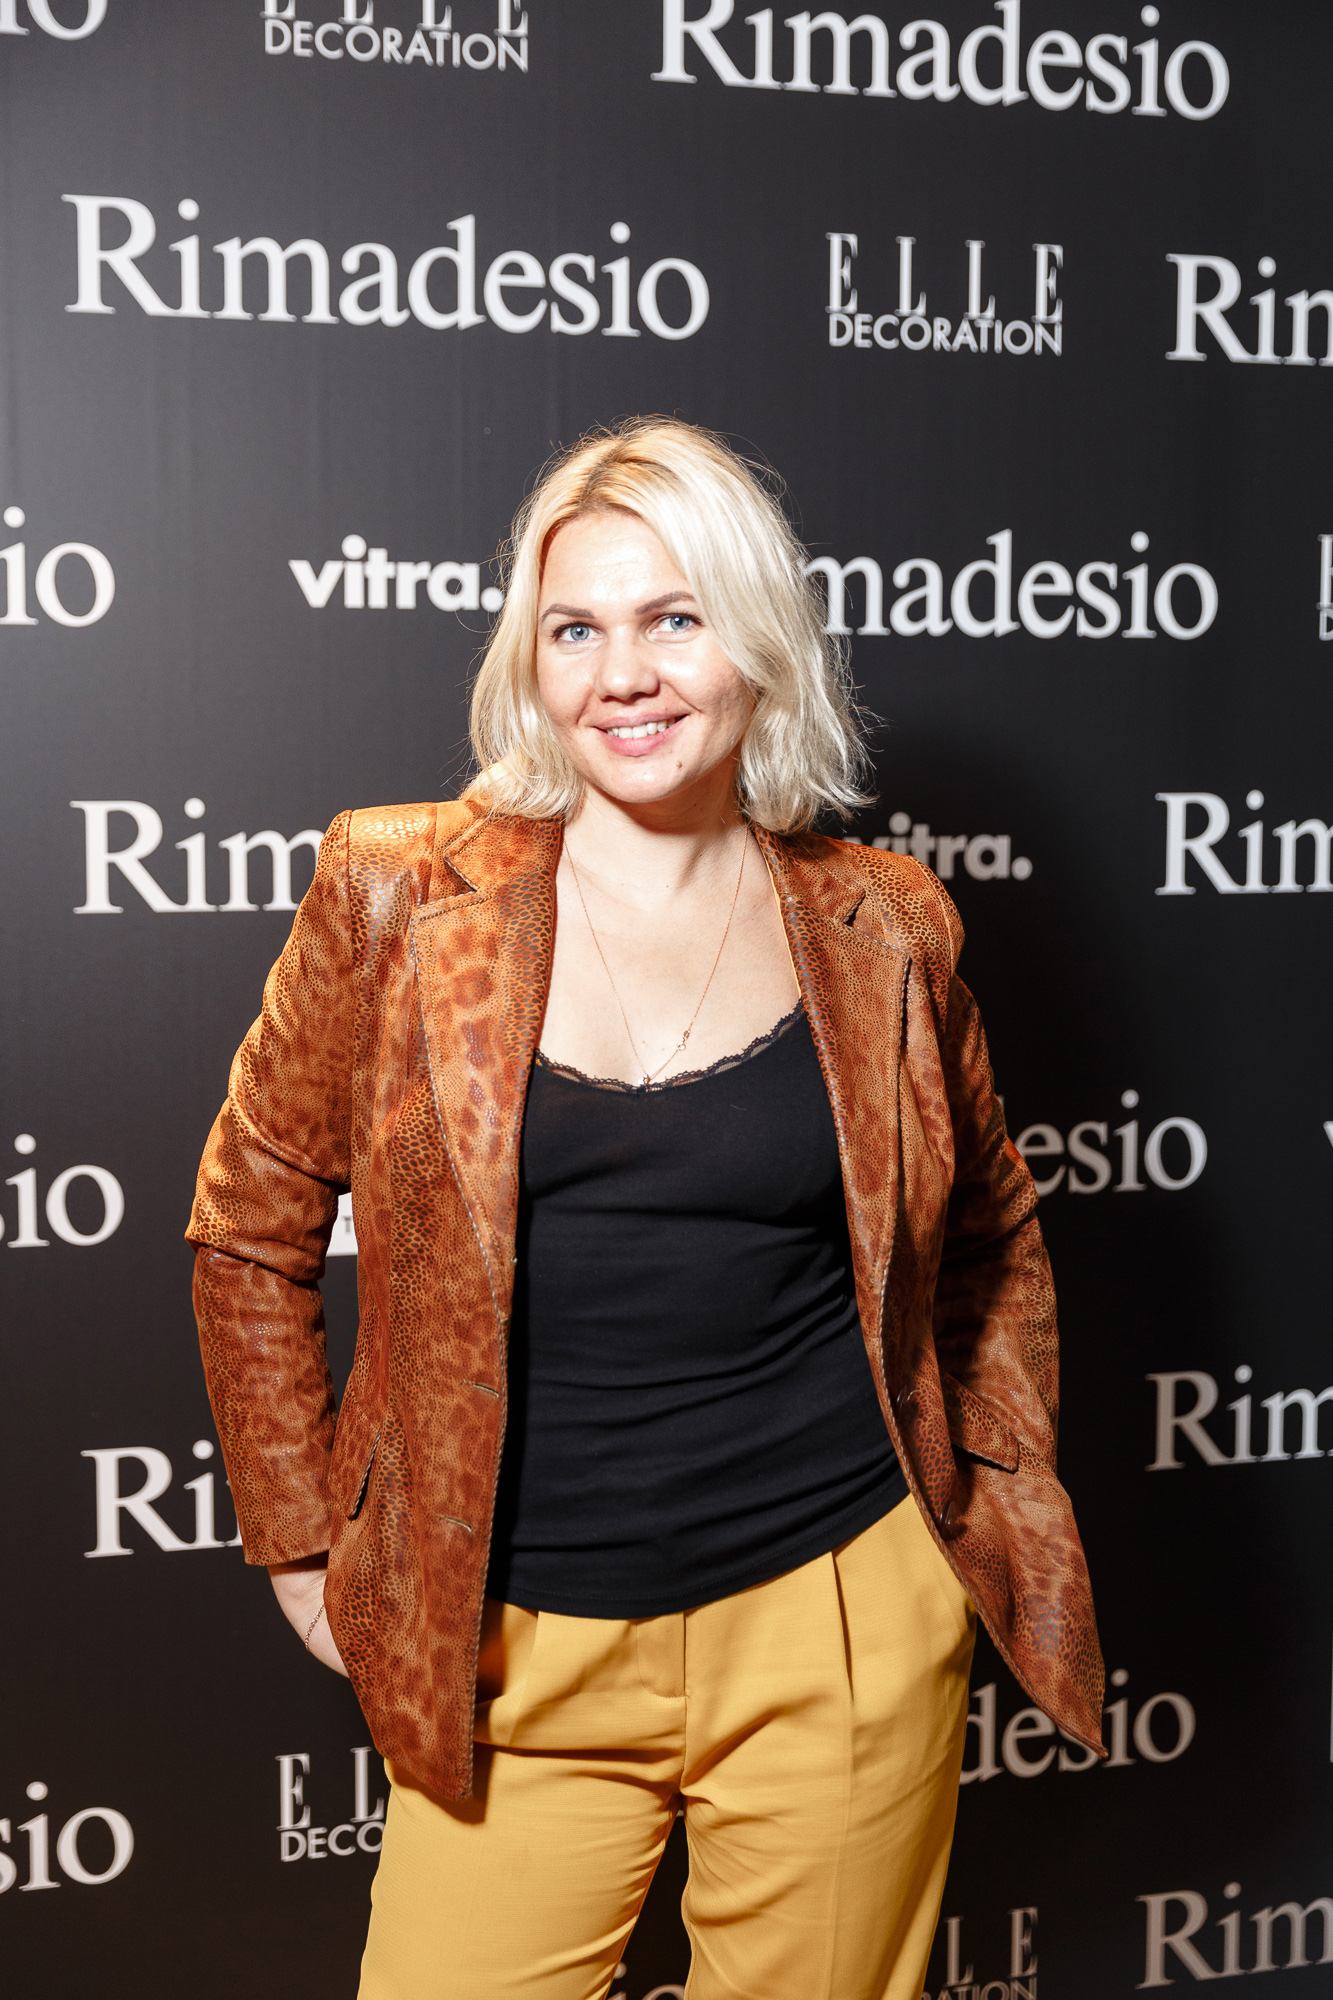 rimadesio-moscow-149